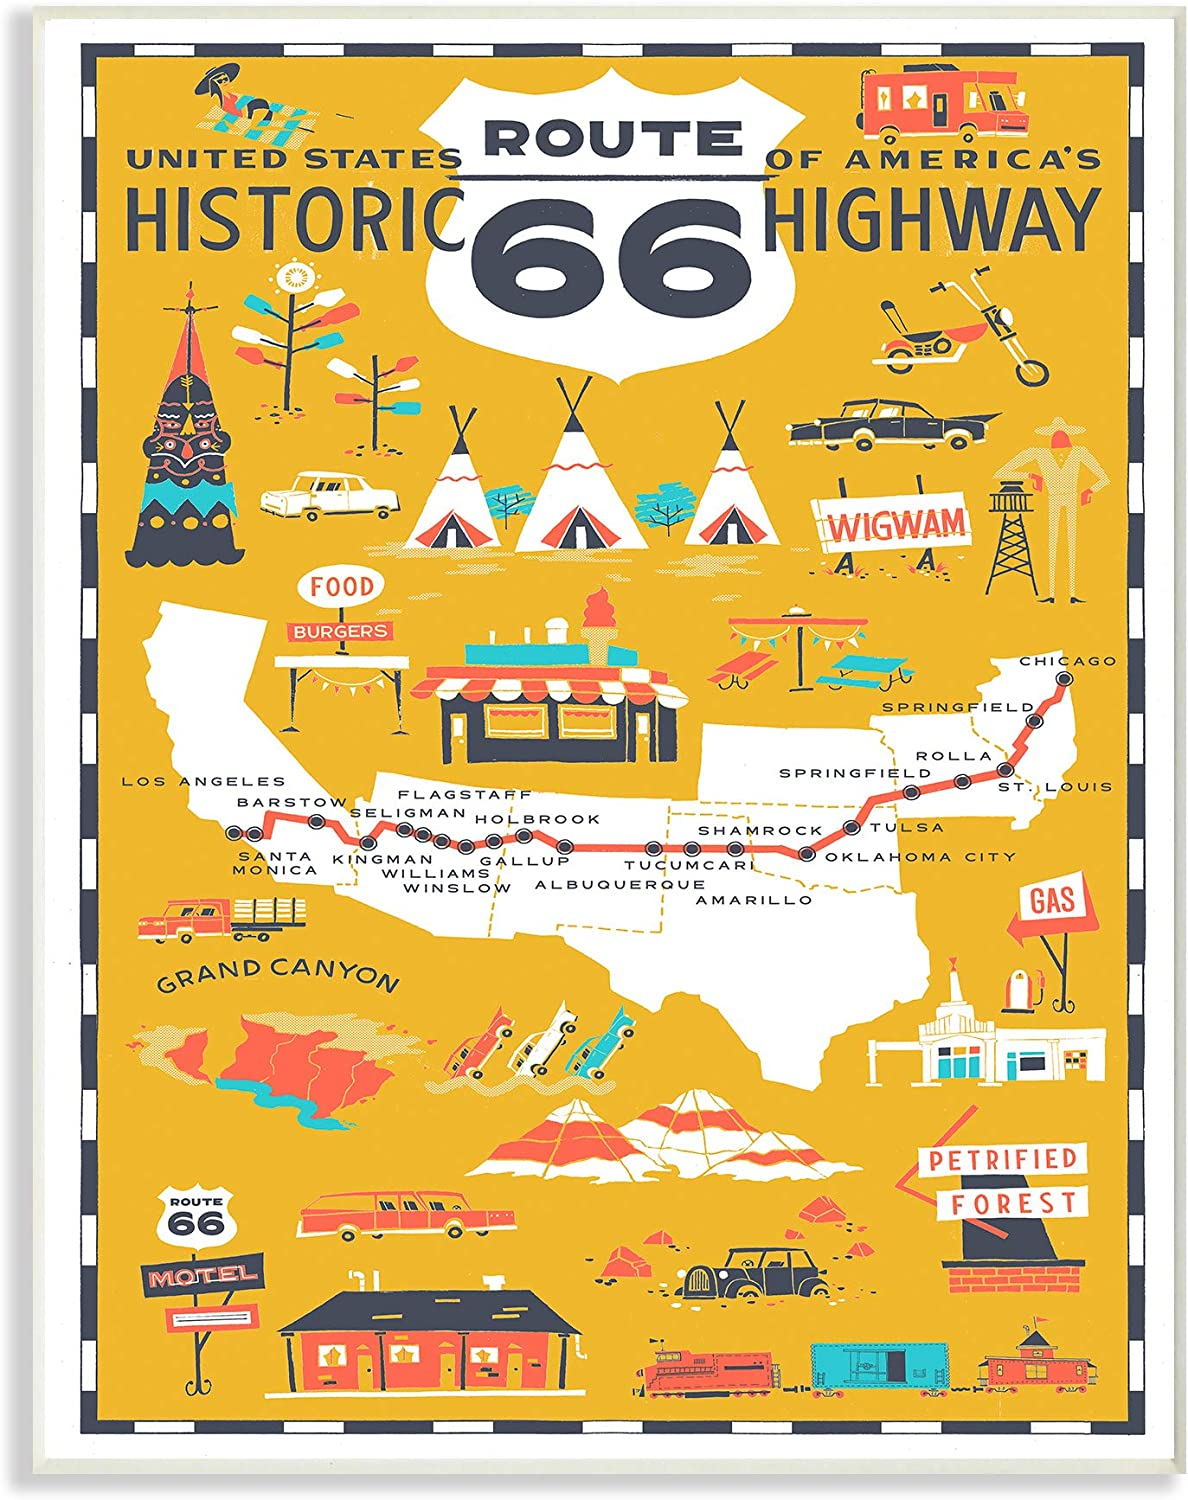 Stupell Industries US Route 66 Historic Highway Mustard Yellow Illustrated Scenic Map Poster Oversized Wall Plaque Art, 12 x 0.5 x 18, Multi-Color